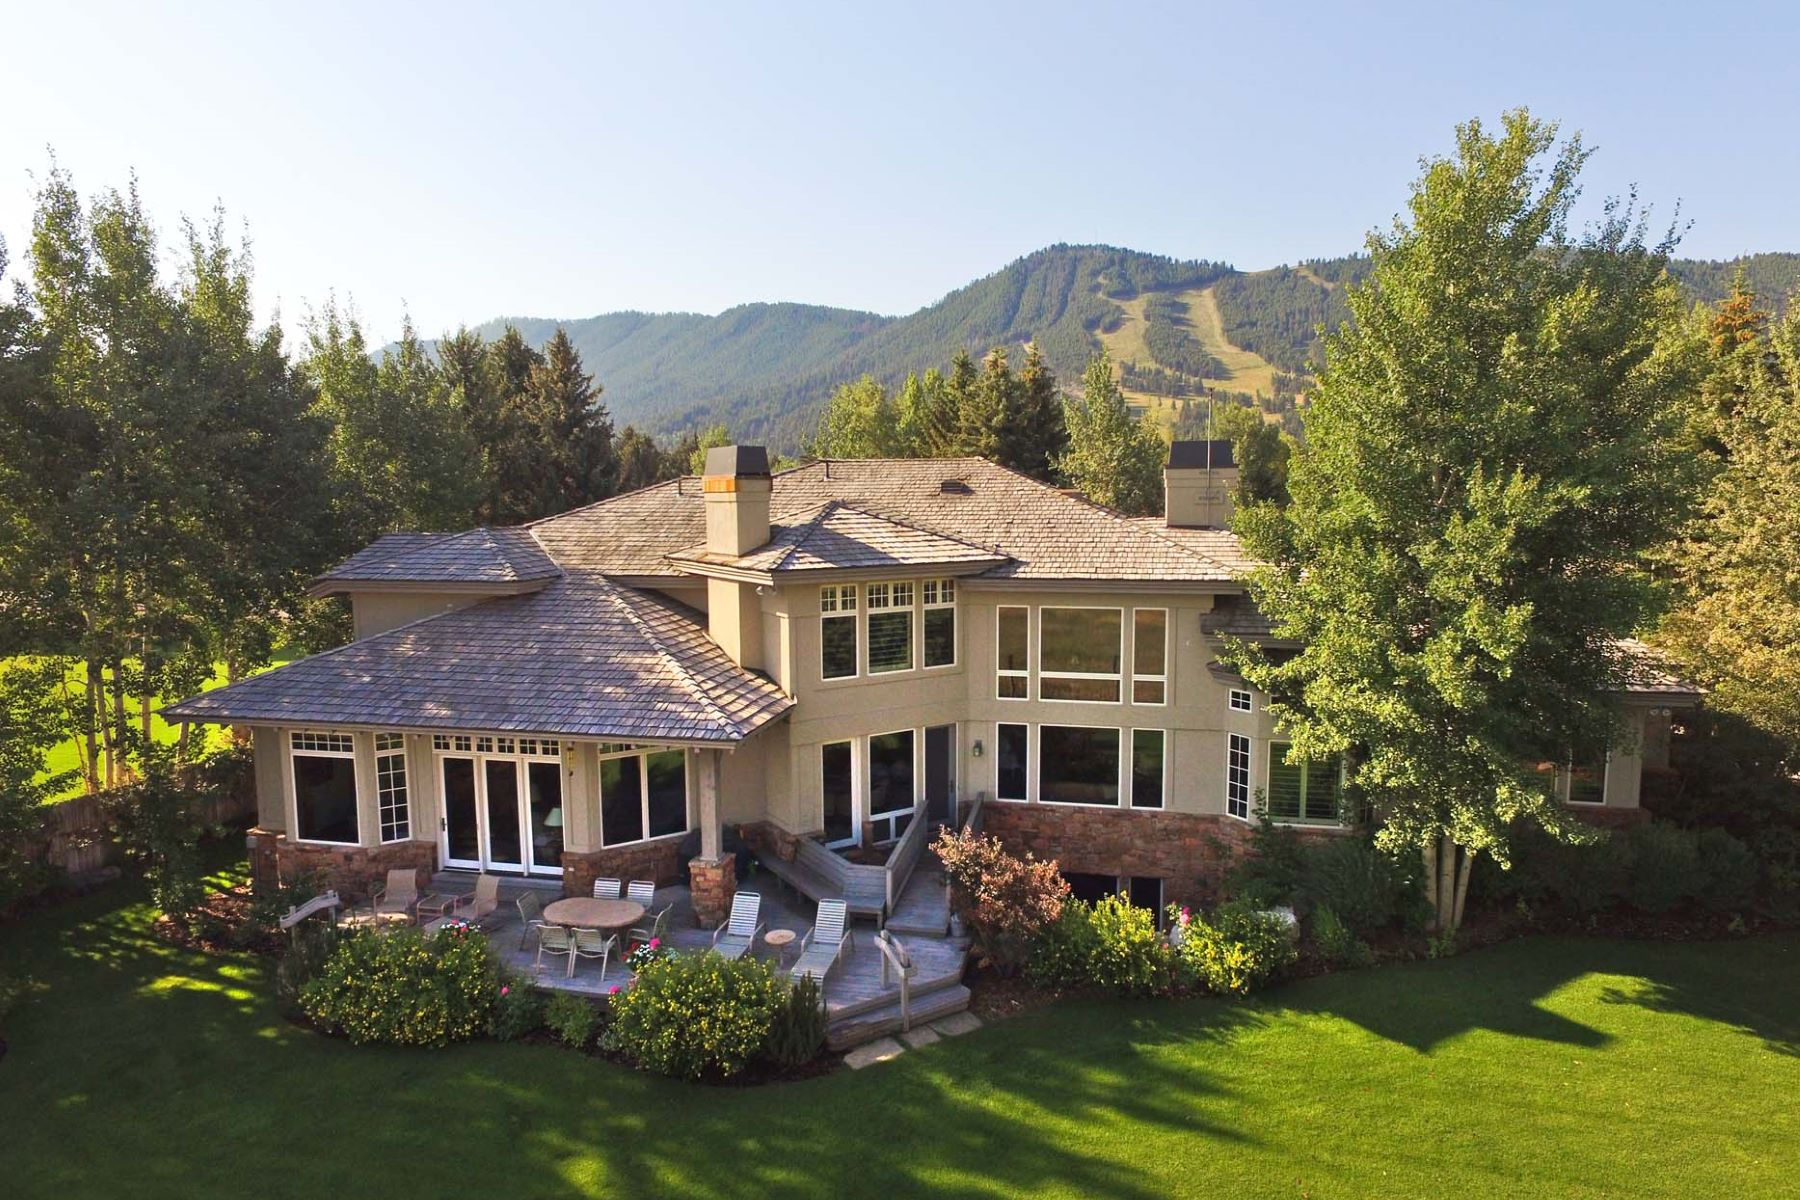 Villa per Vendita alle ore Gill Addition Gem 355 Teton Ave Jackson, Wyoming, 83001 Jackson Hole, Stati Uniti